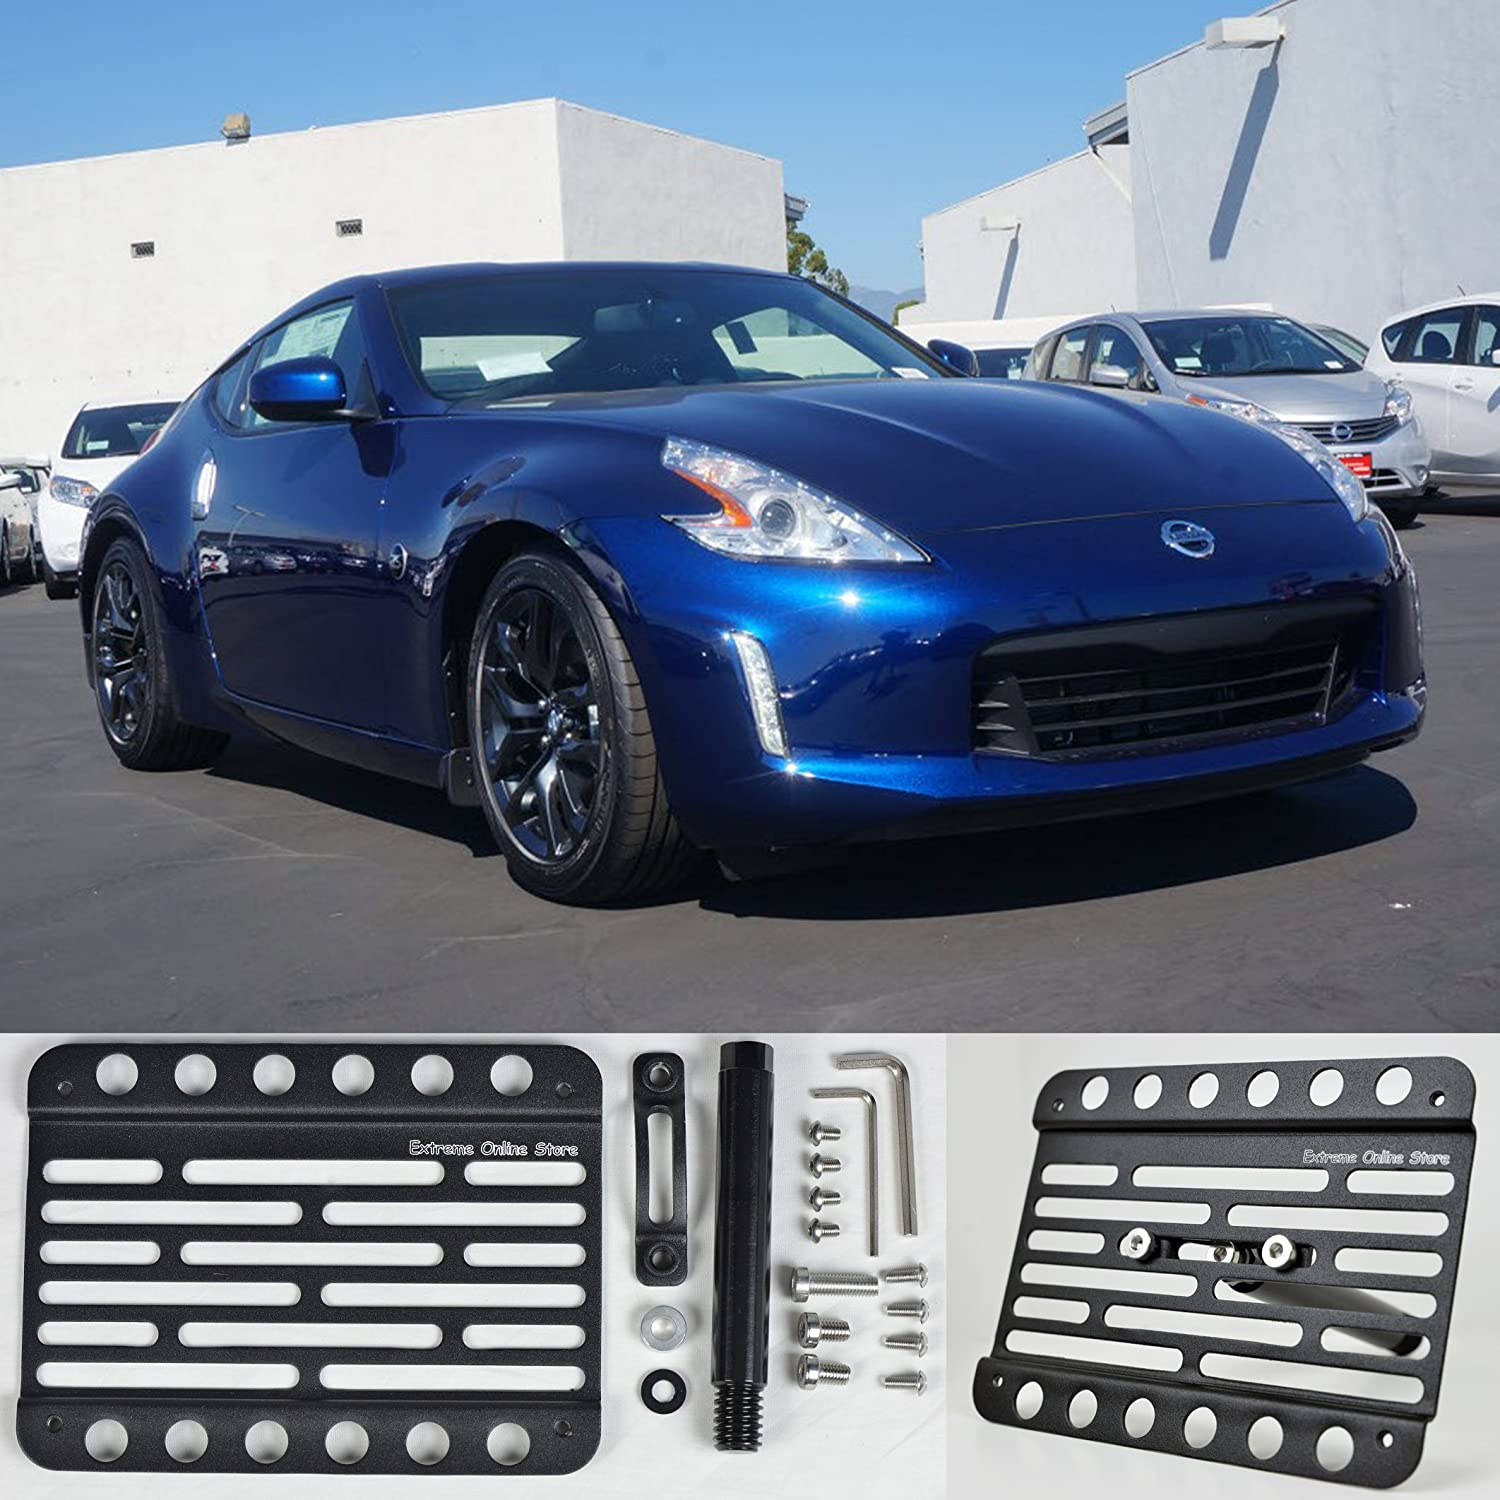 Amazon.com: For 2013-Up Nissan 370Z Front Tow Hook Mount License ...